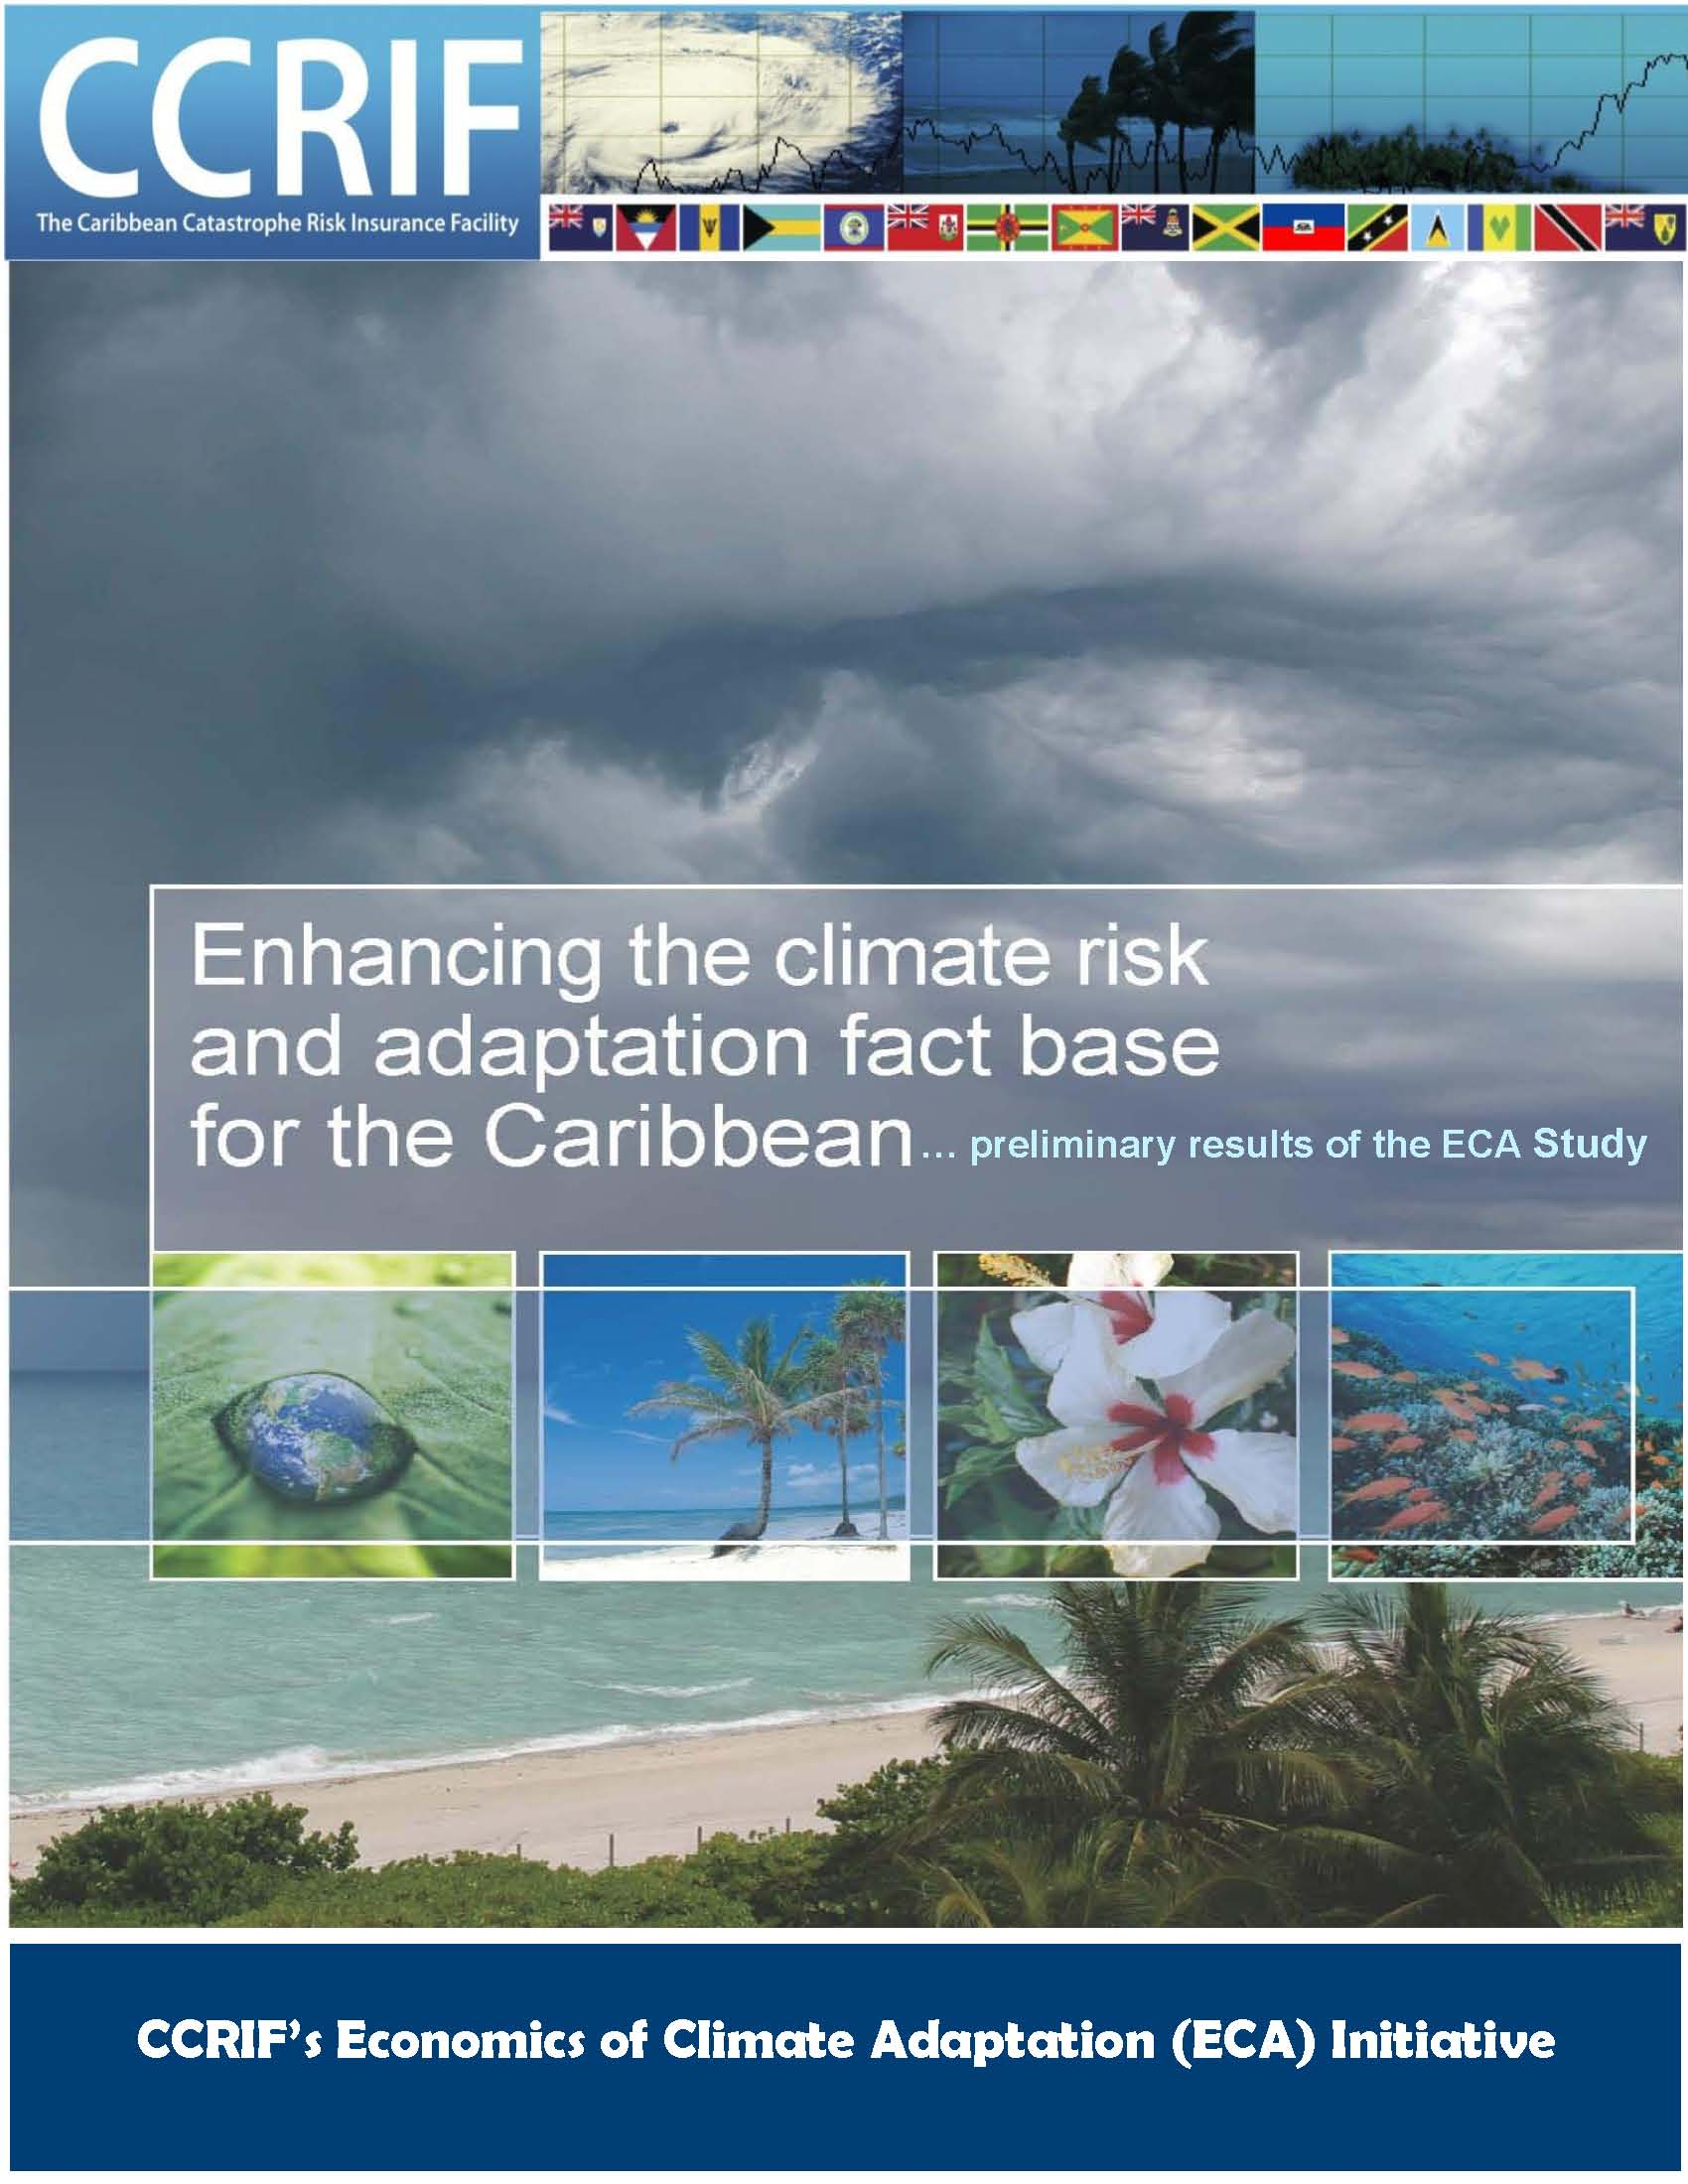 Brochure - Enhancing the Climate Risk and Adaptation Fact Base for the Caribbean